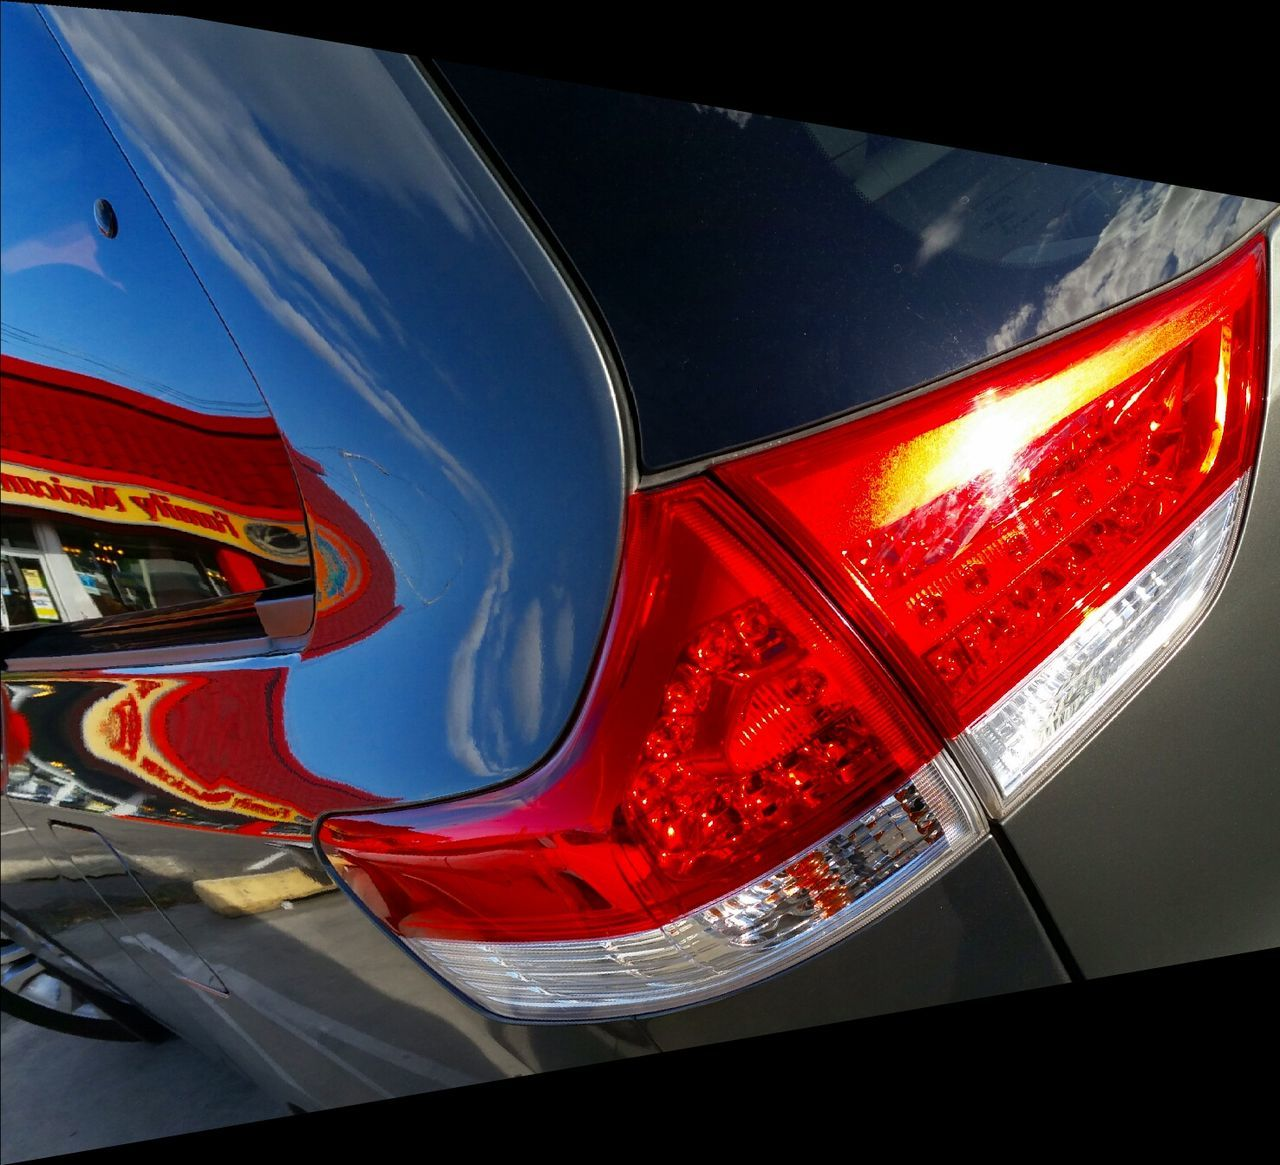 Taillight /Reflections Abstract Abstractions In Colors Abstracted Abstraction Reflections Fine Art Photography Fineartphotography Fineart_photo Beauty In Ordinary Things Beautyineverything Nothingisordinary Nothingisordinary_ BestofEyeEm Showcase June Visualoftheday Artcurial Carparts Automotive Taillight Tail Light Meinautomoment